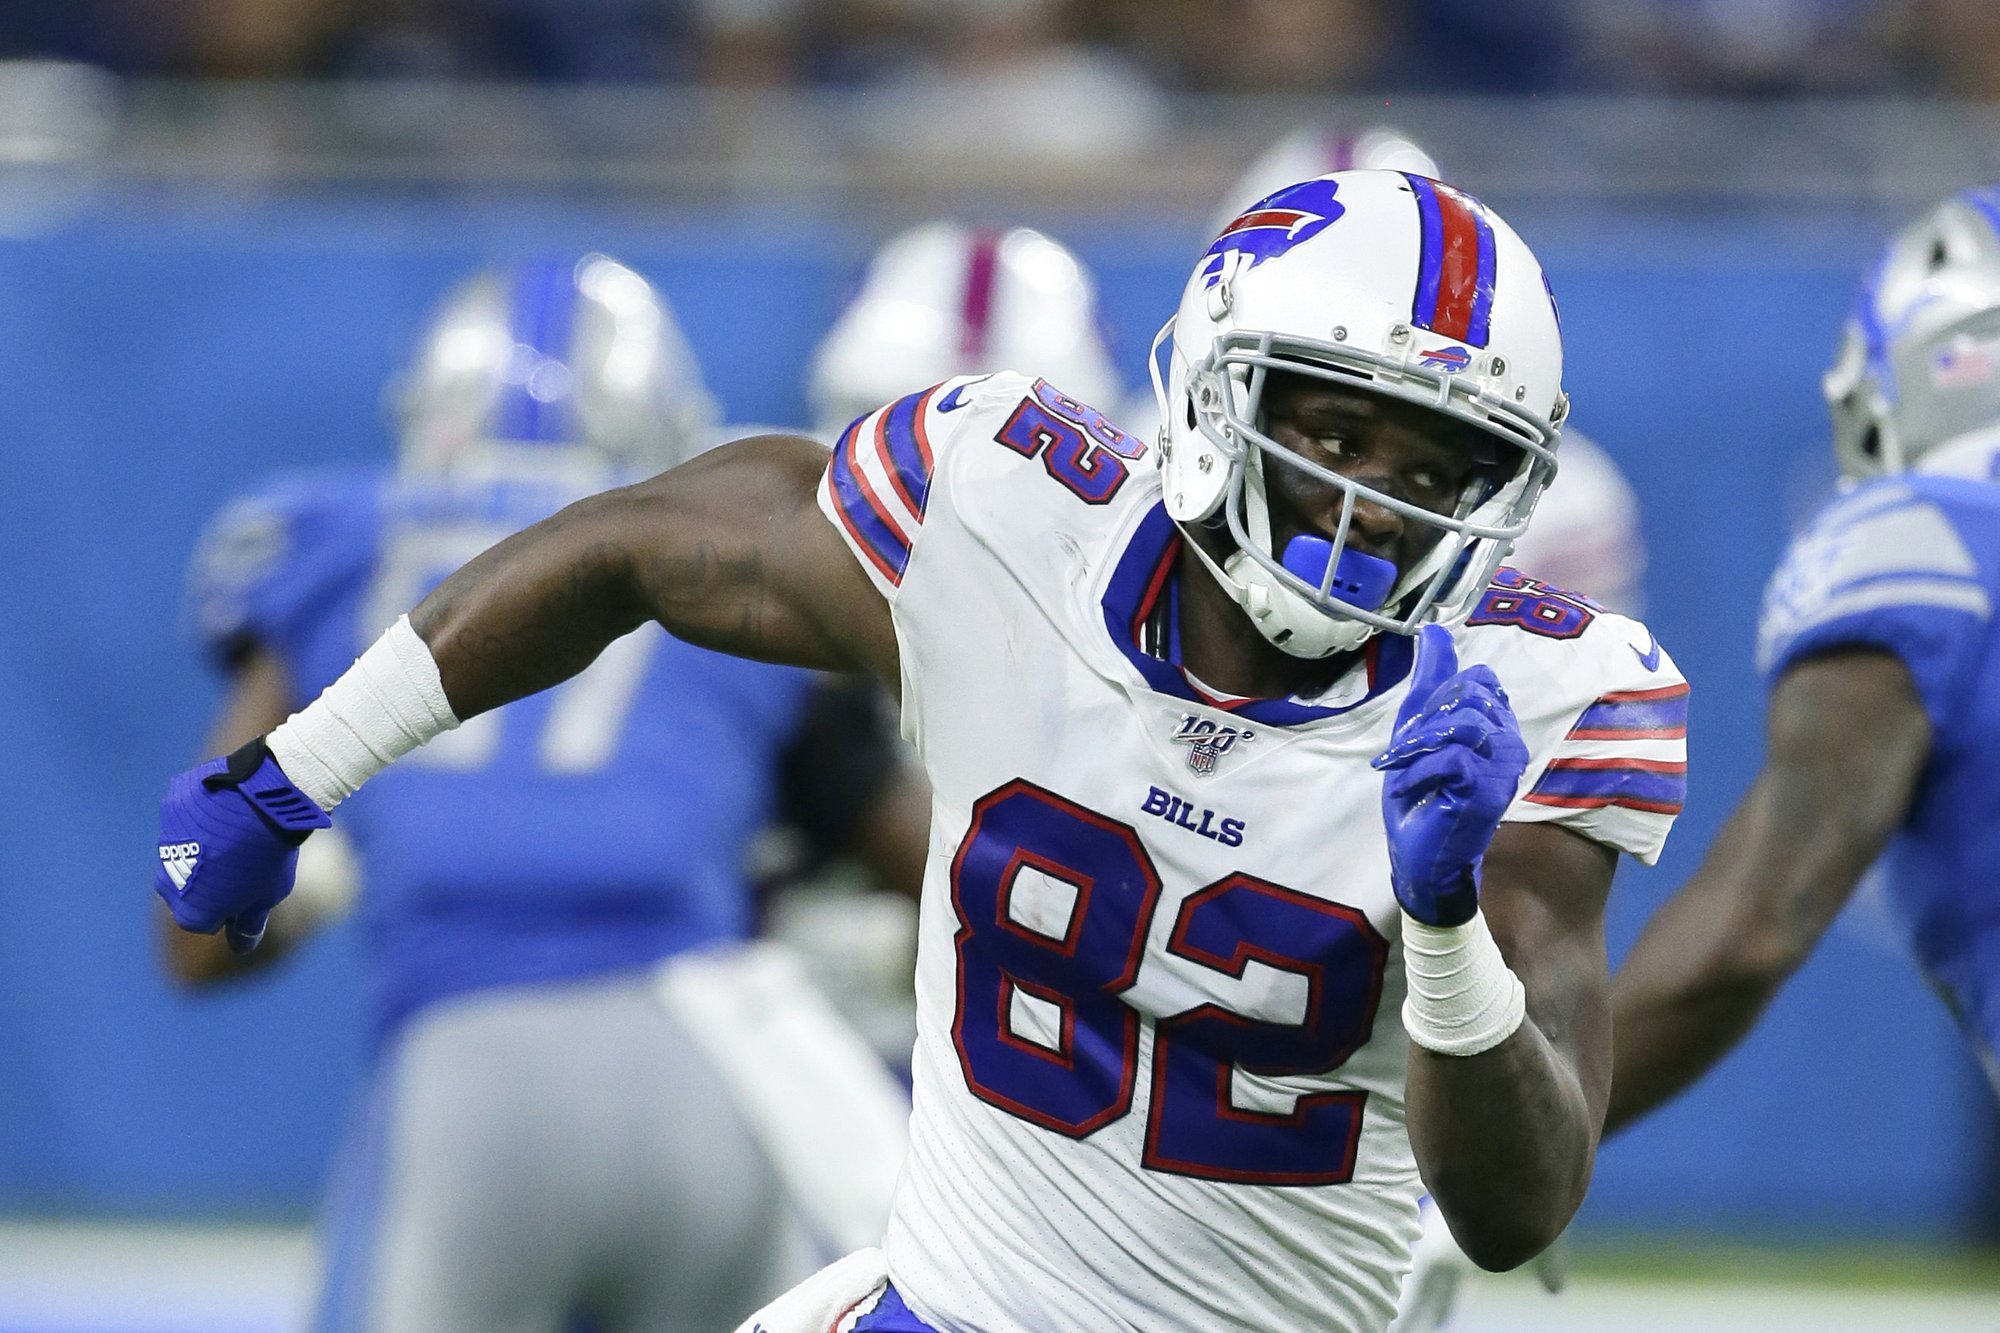 Receiver Duke Williams revives career with Bills